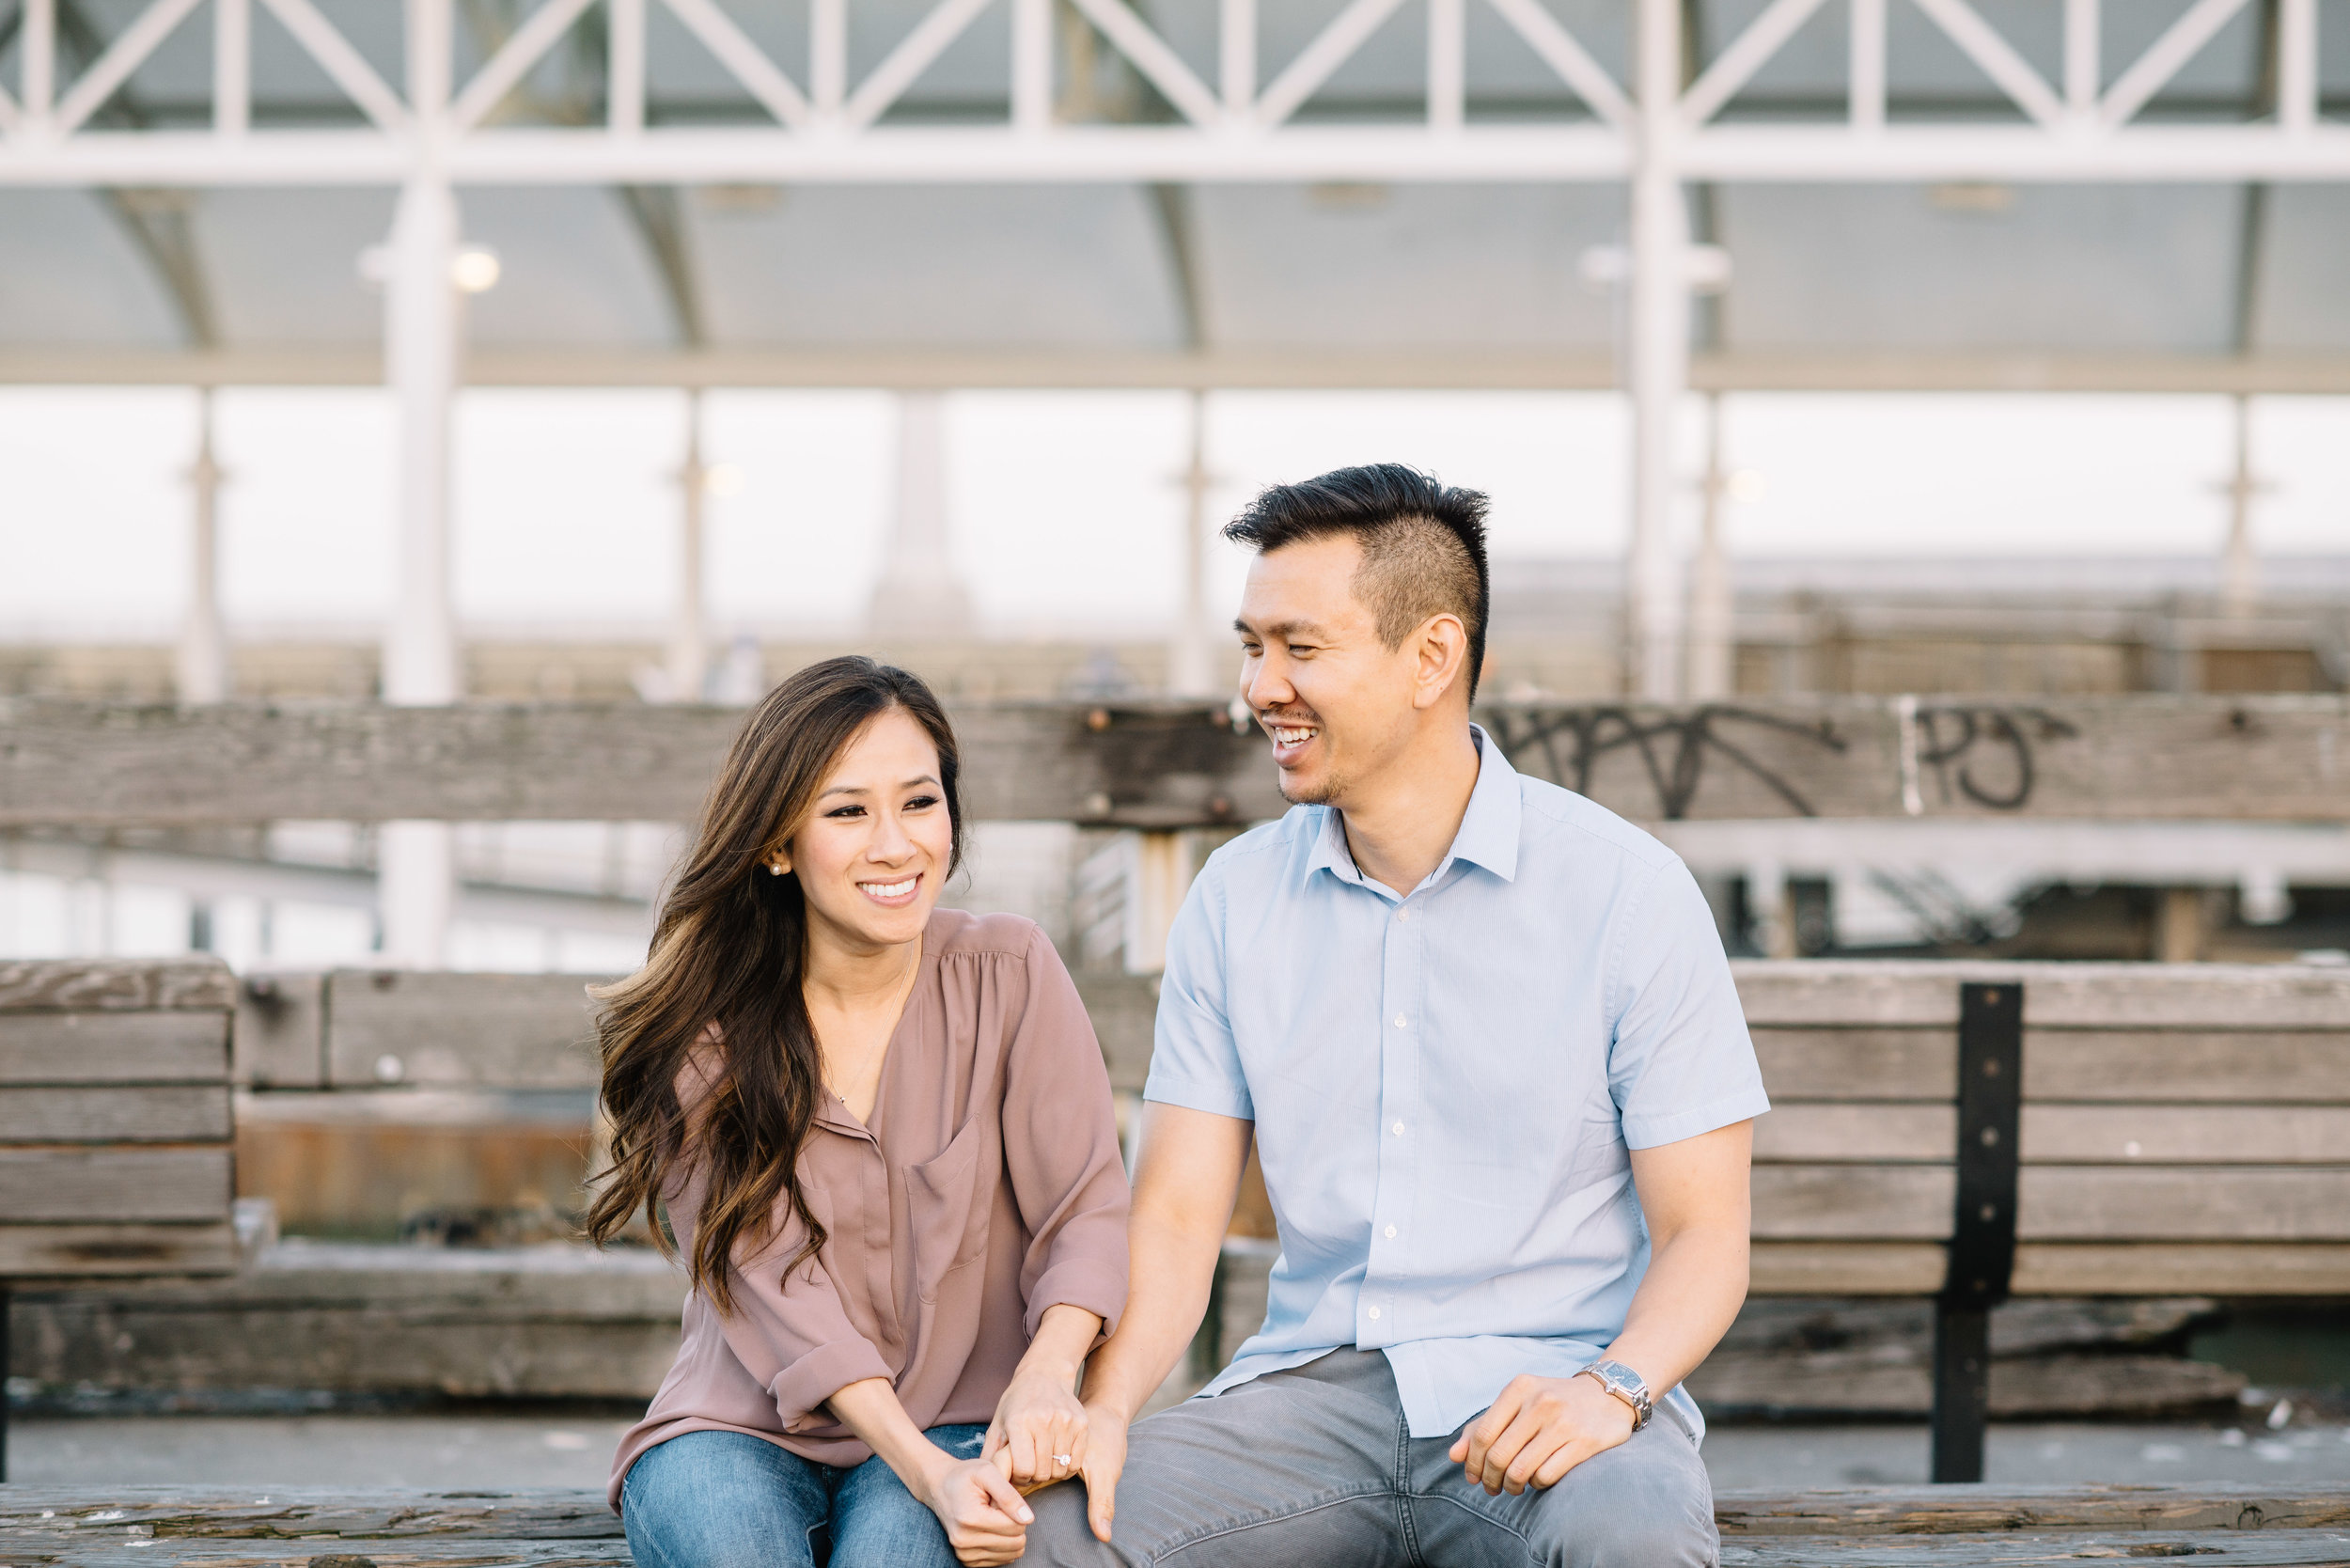 jennifer-jayn-photography-san-francisco-engagement-session-09.jpg